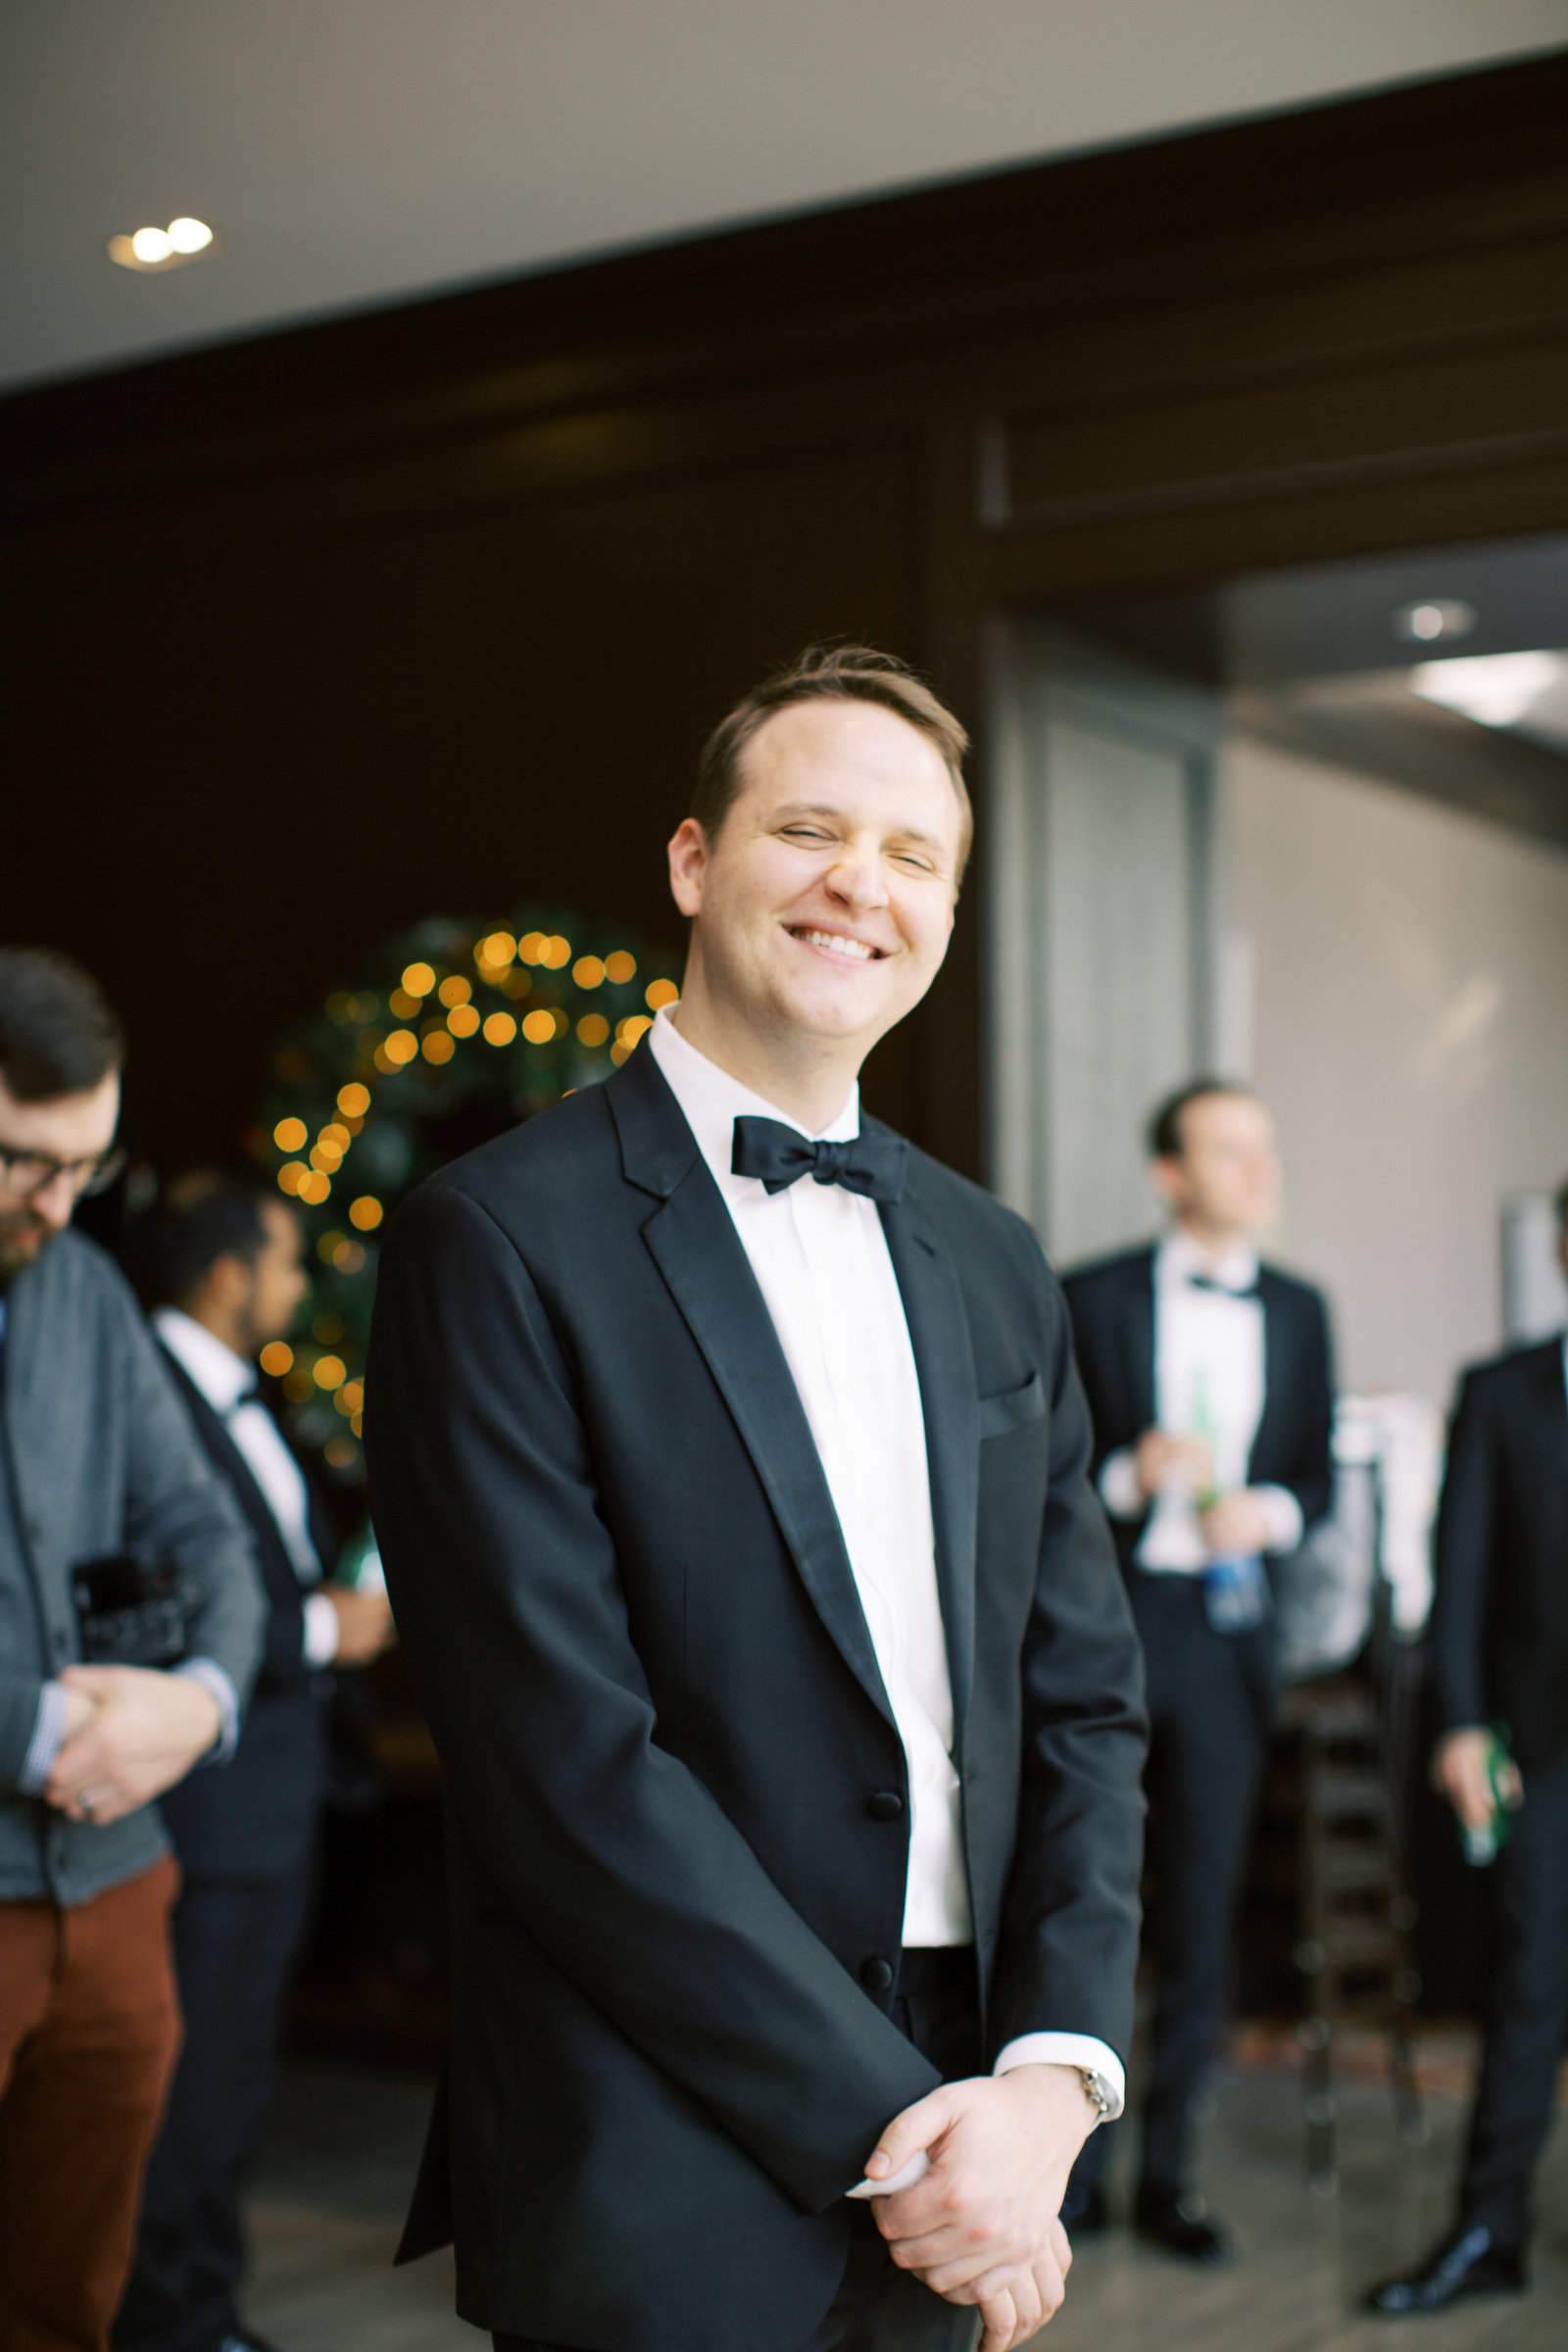 Winter wedding at the Westin in Cleveland